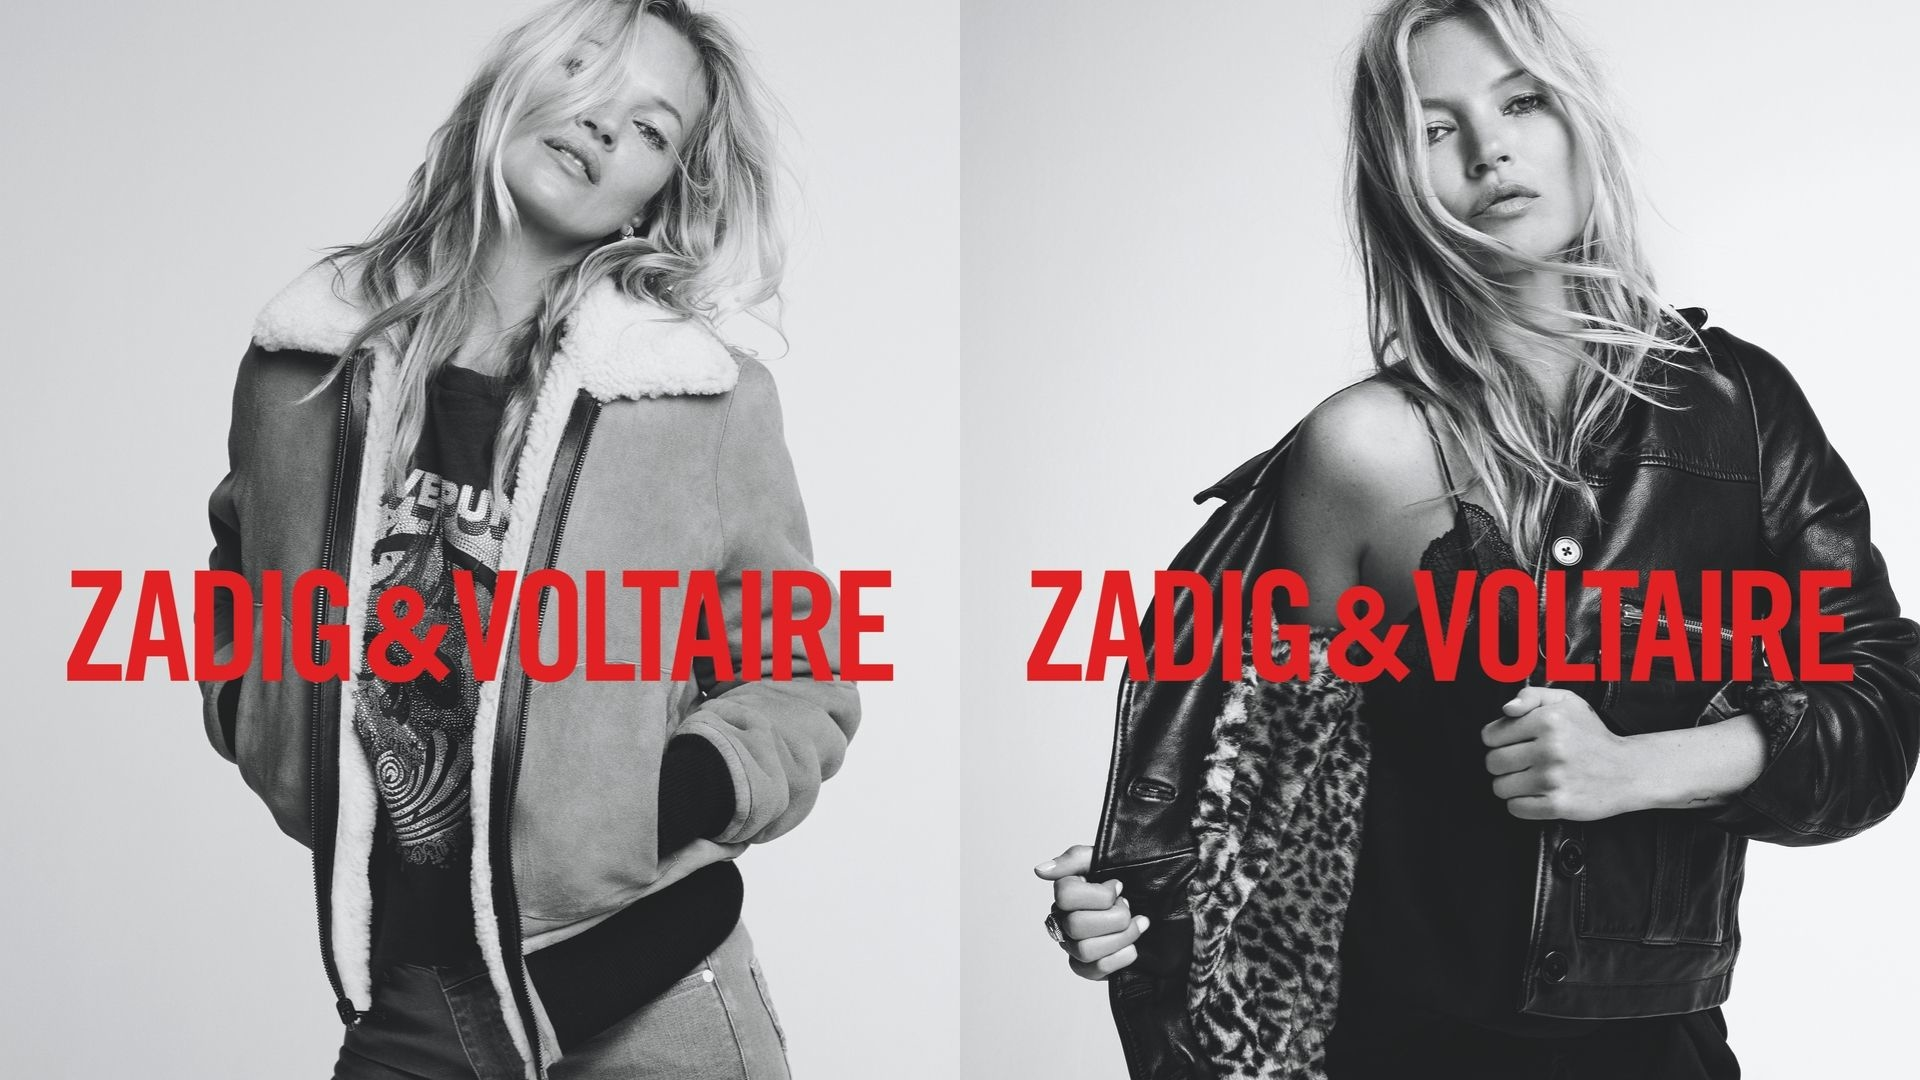 Everything You Need To Know About Kate Moss' Collaboration With Zadig & Voltaire